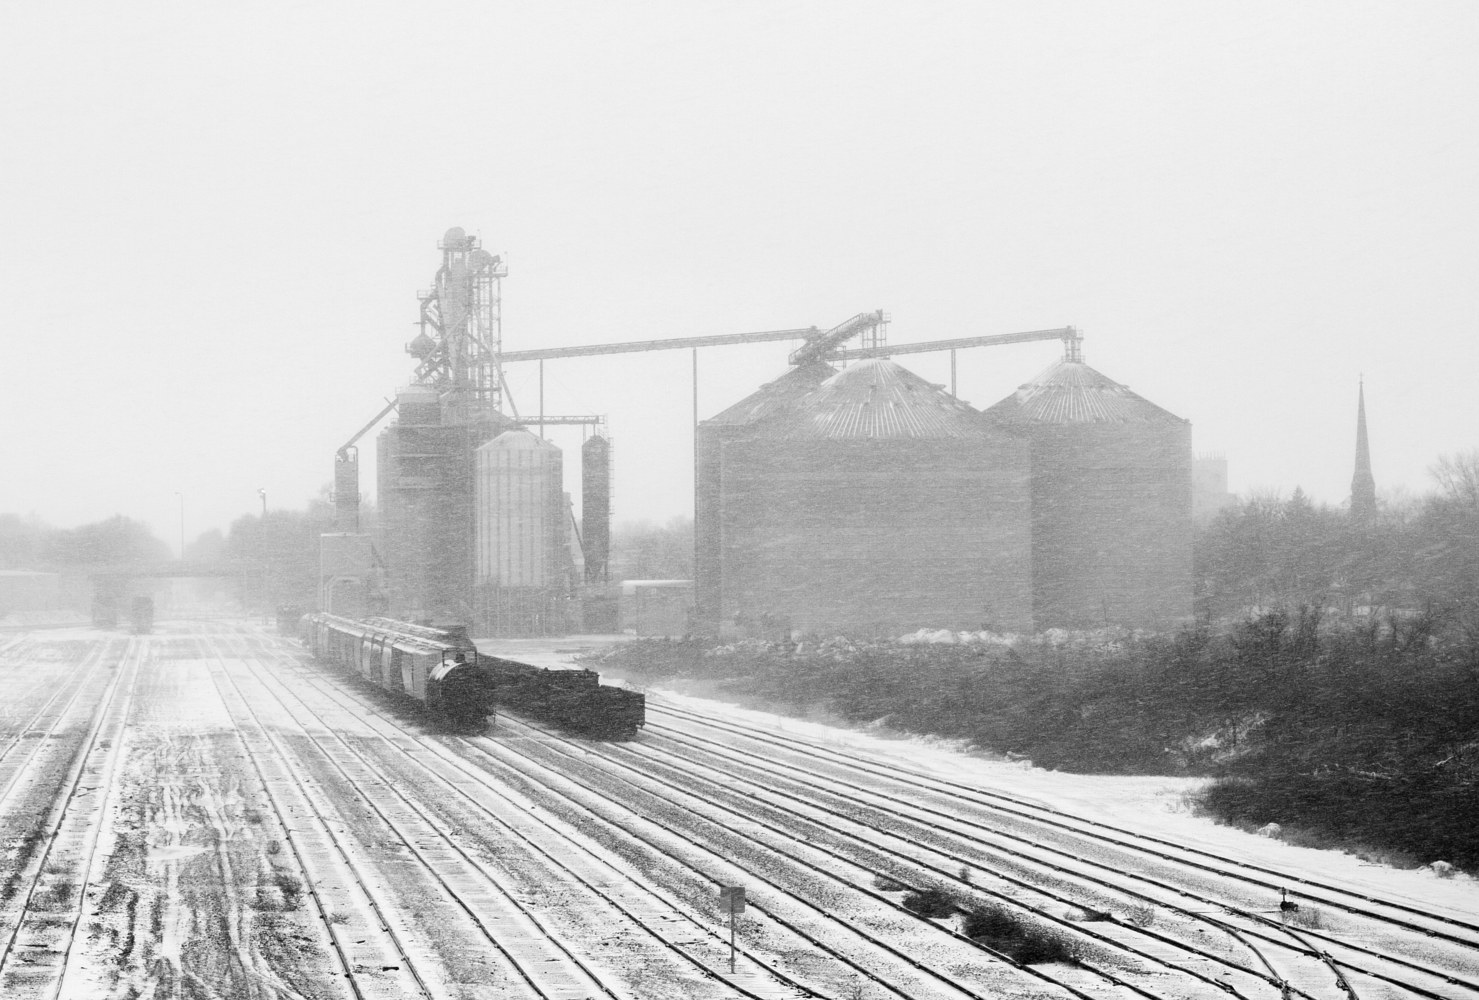 Trains Bloomington IL 2015 White-Out by Theodore Diamond